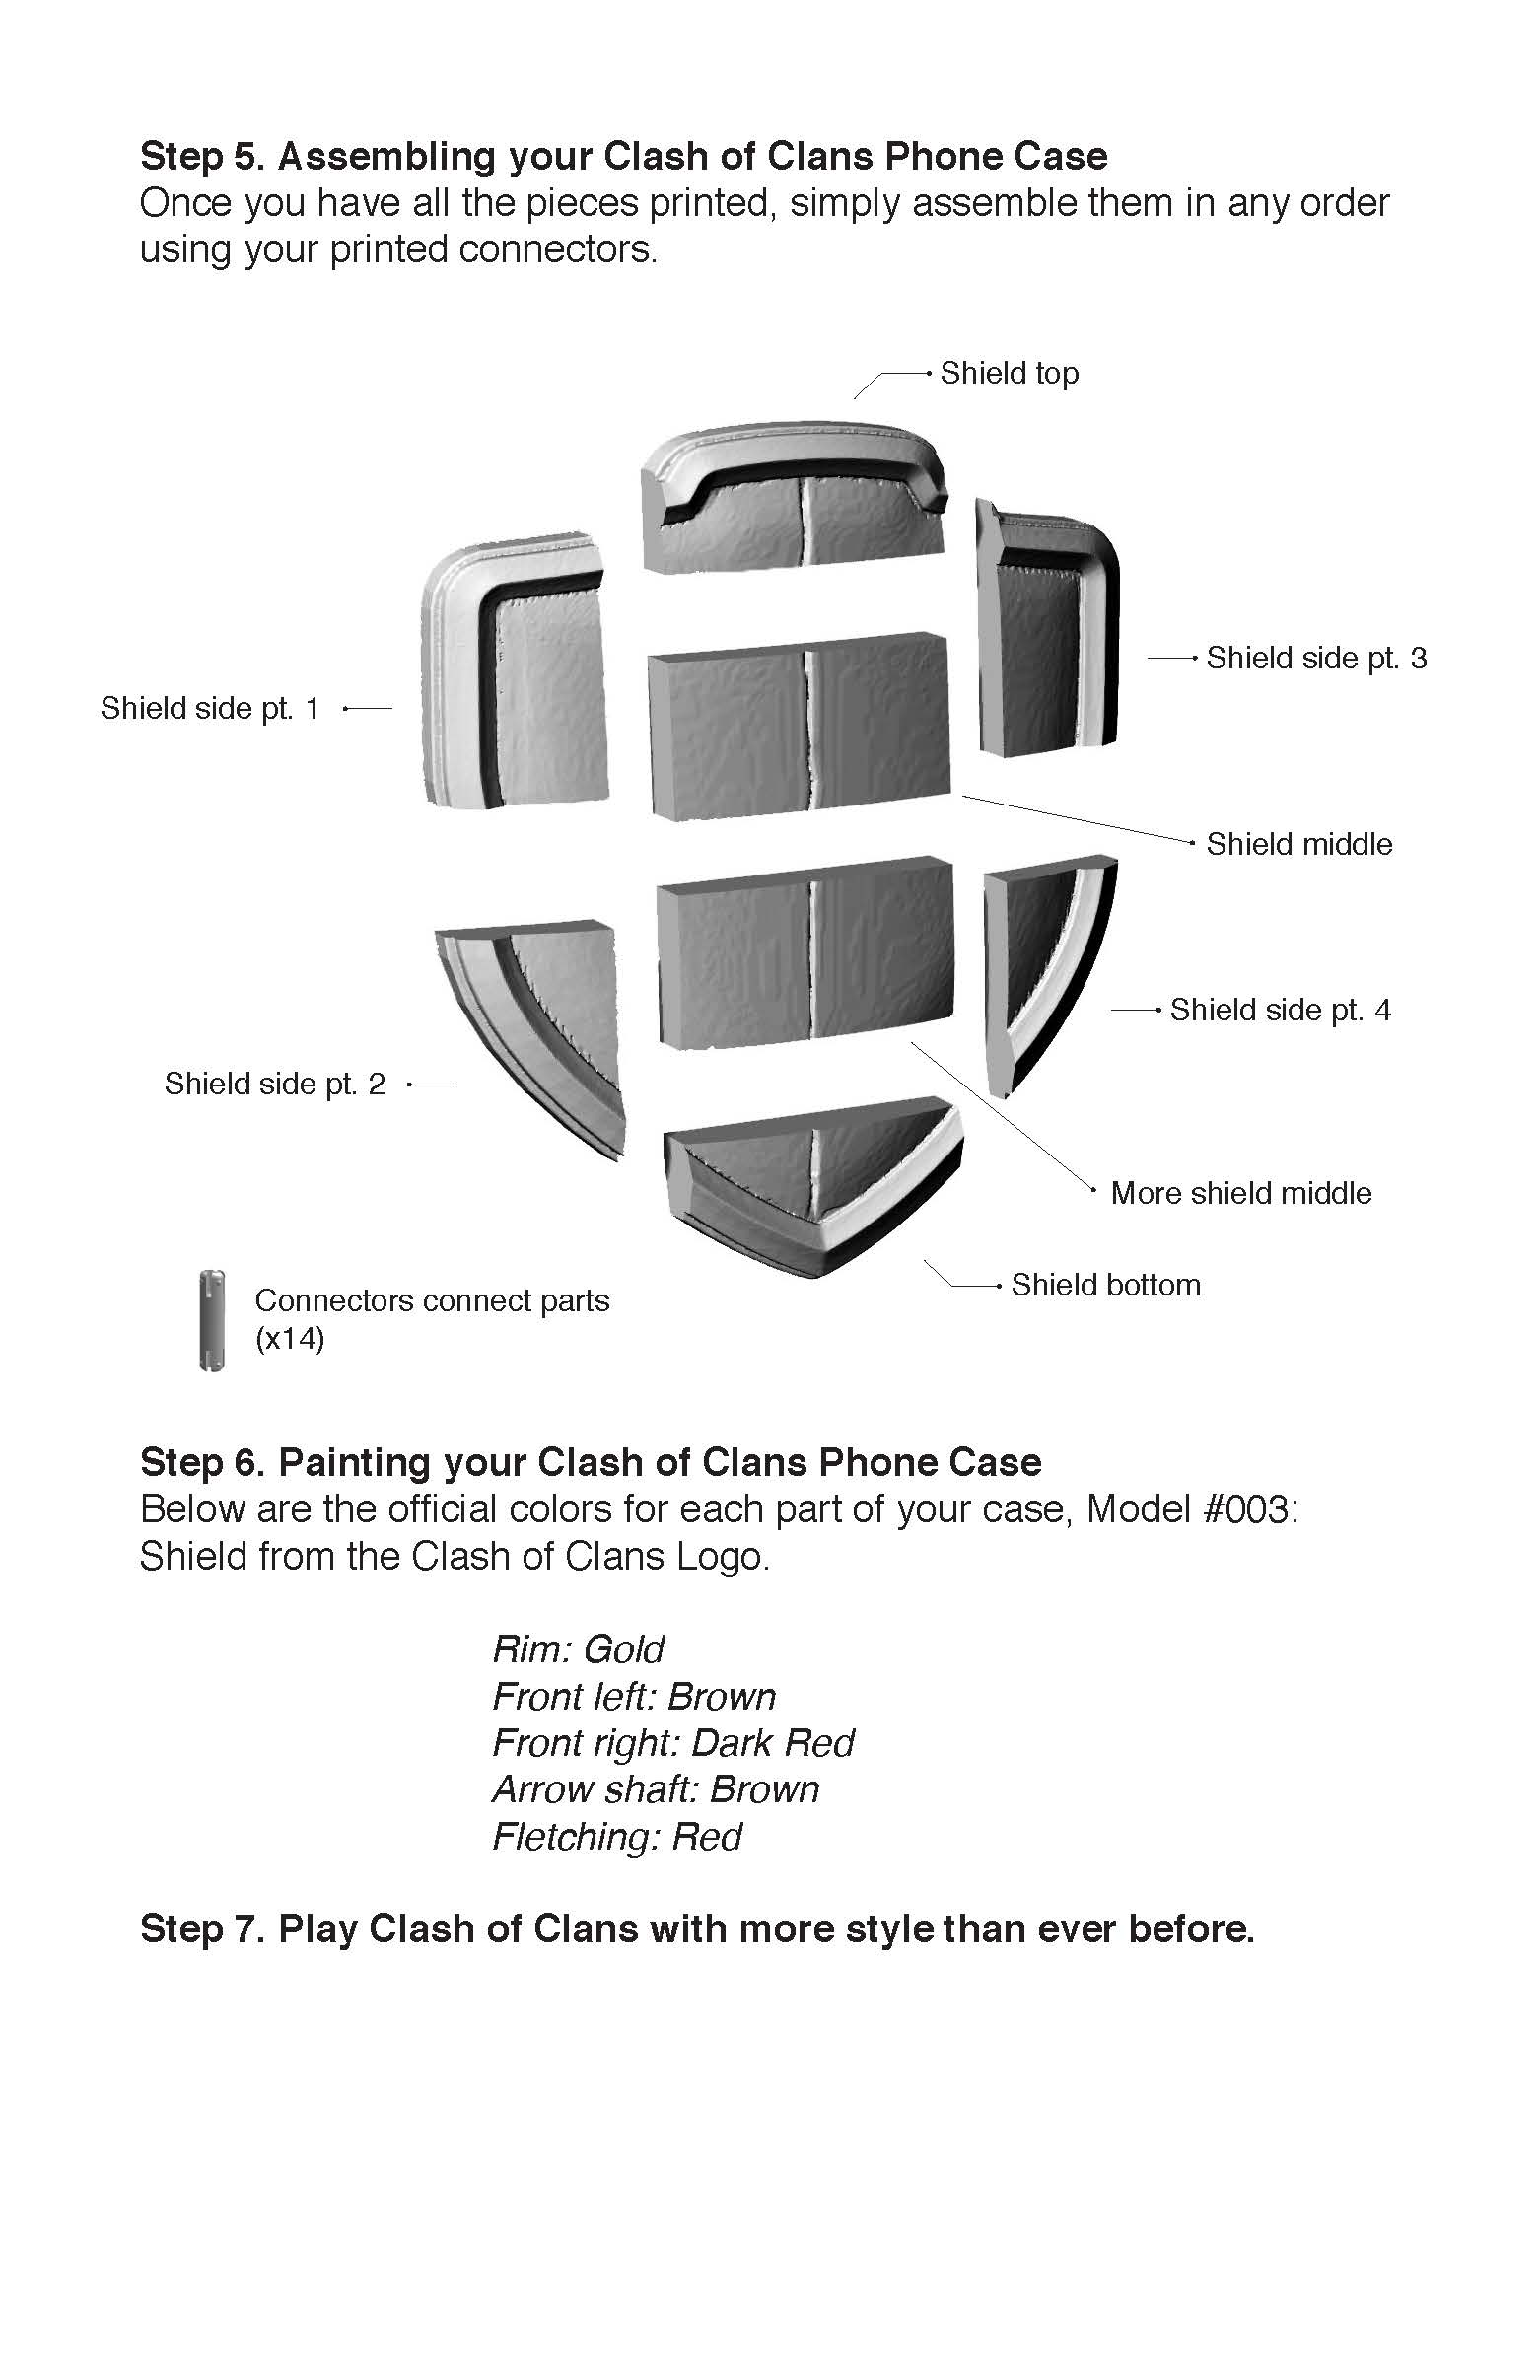 Clash-of-Clans-Phone-Cases-Instruction-Manual-Model-003-Shield-from-the-Clash-of-Clans-Logo_Page_3.jpg